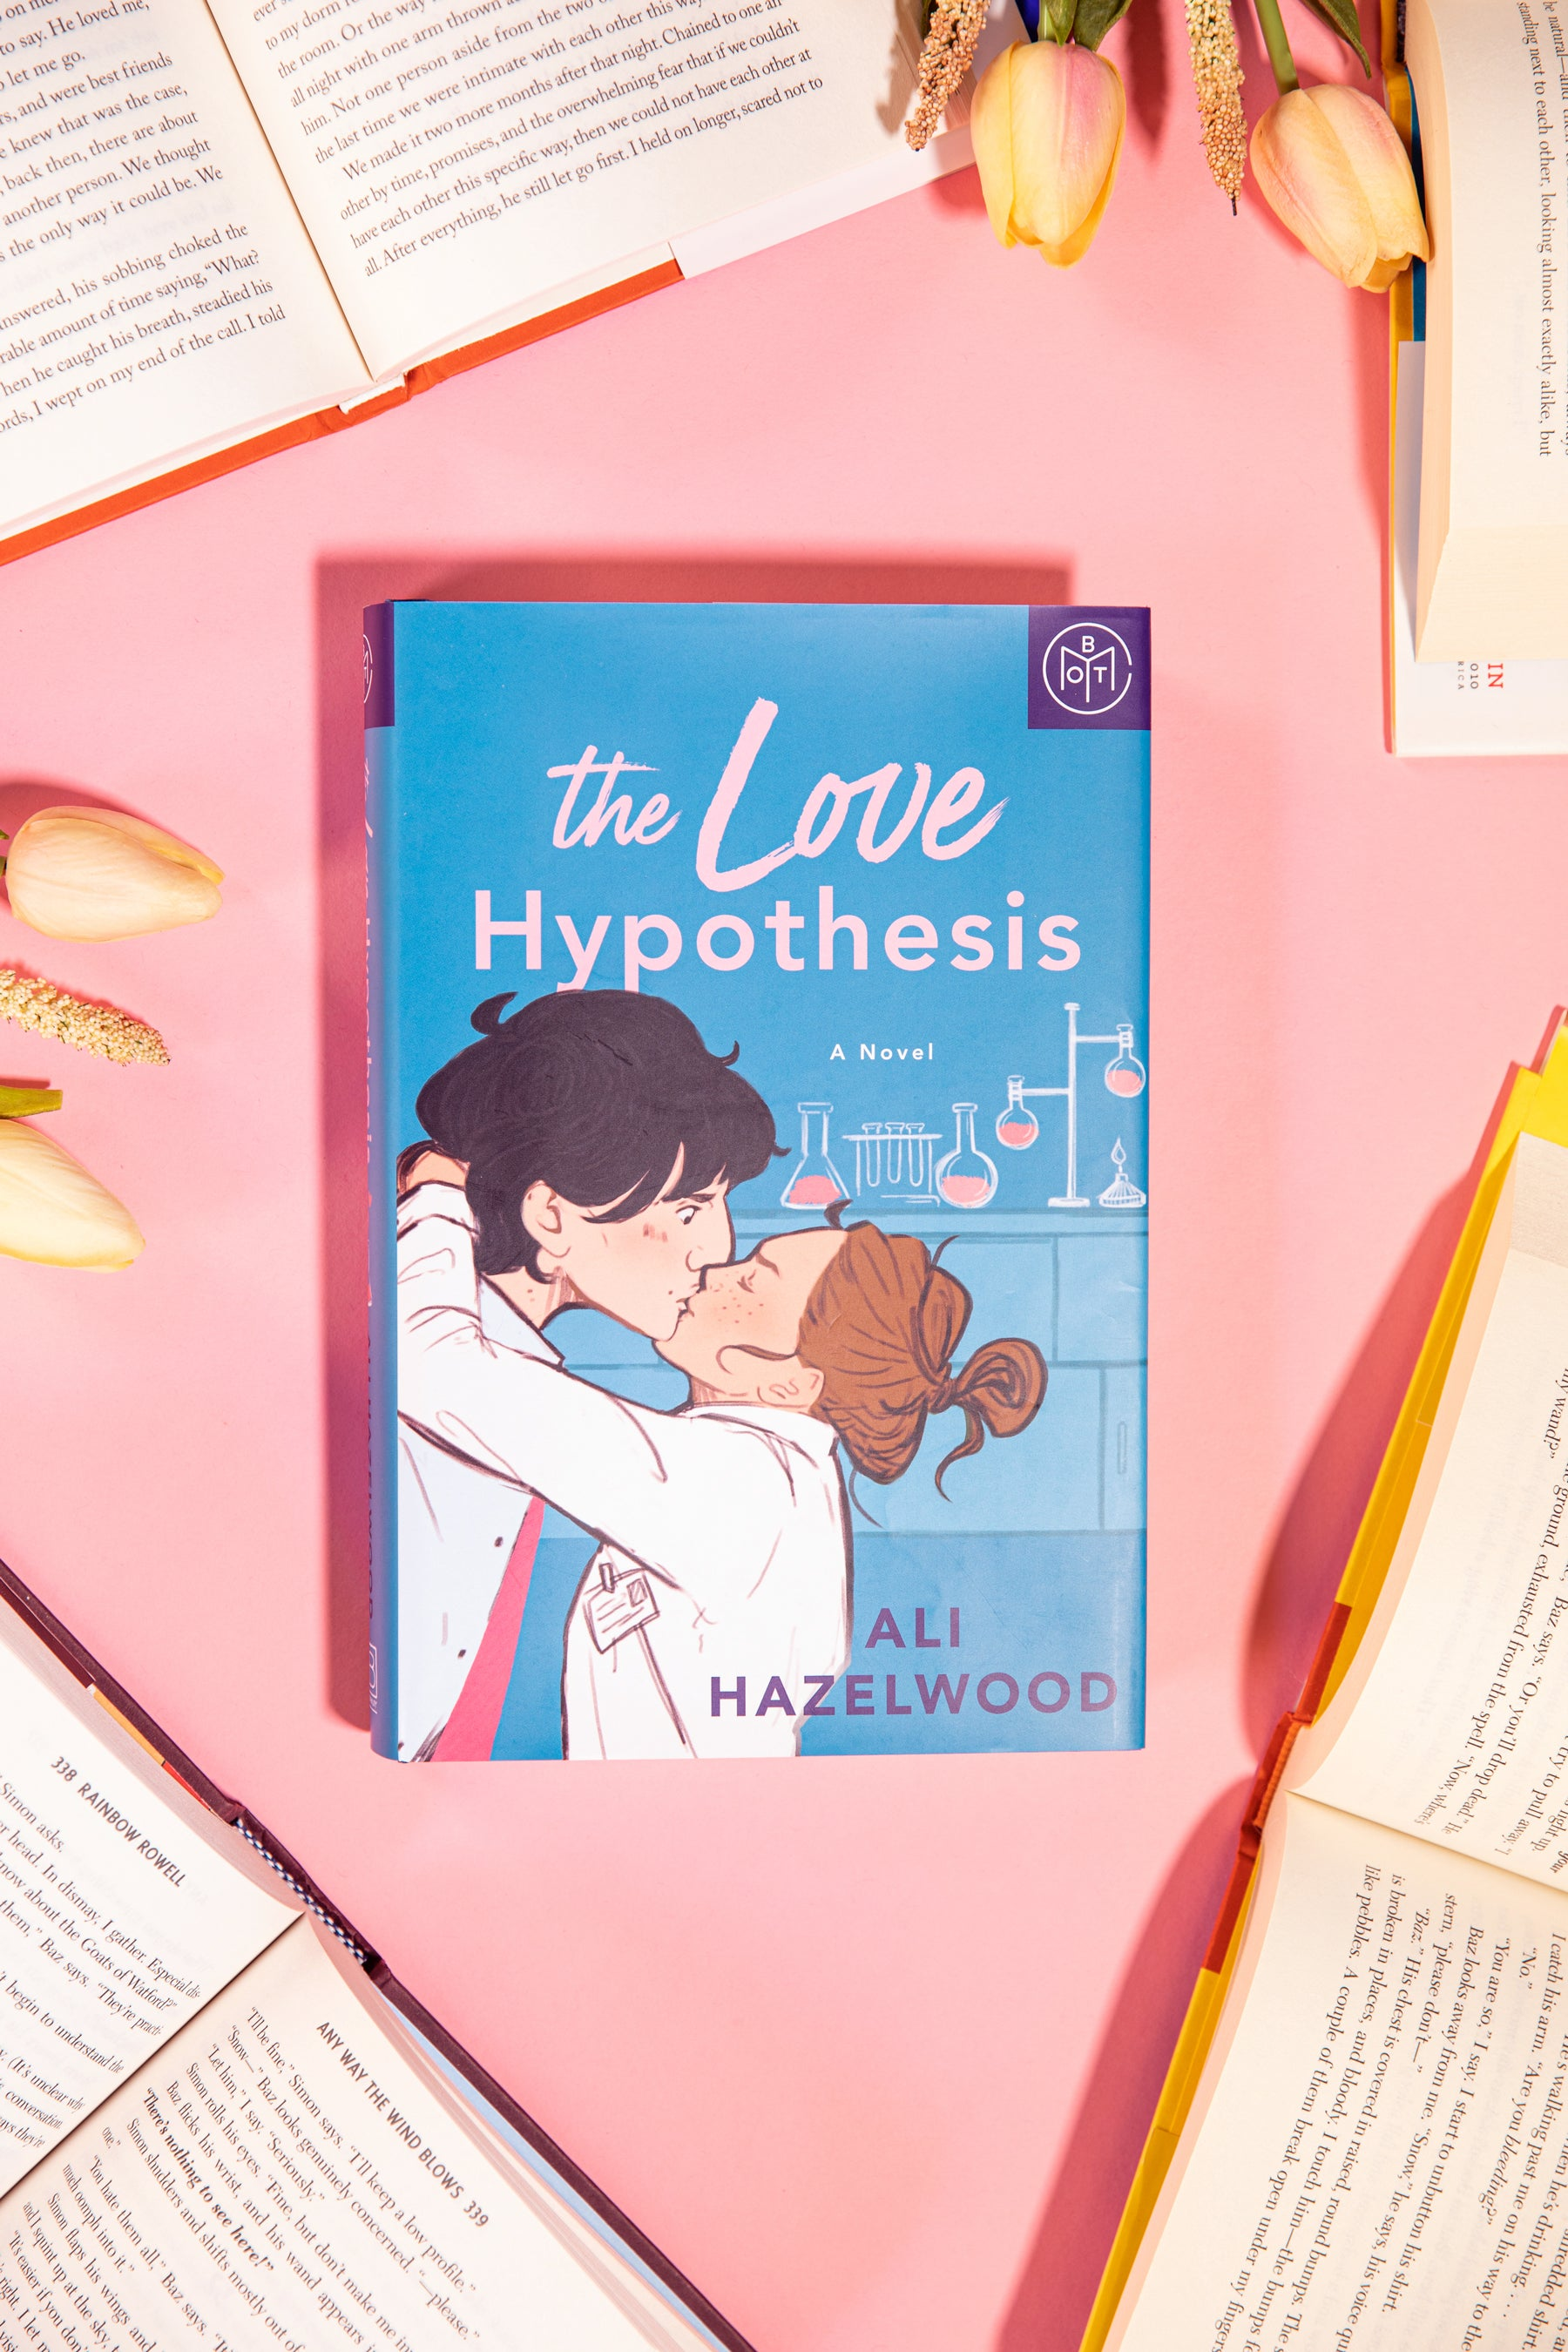 The Love Hypothesis, by Ali Hazelwood